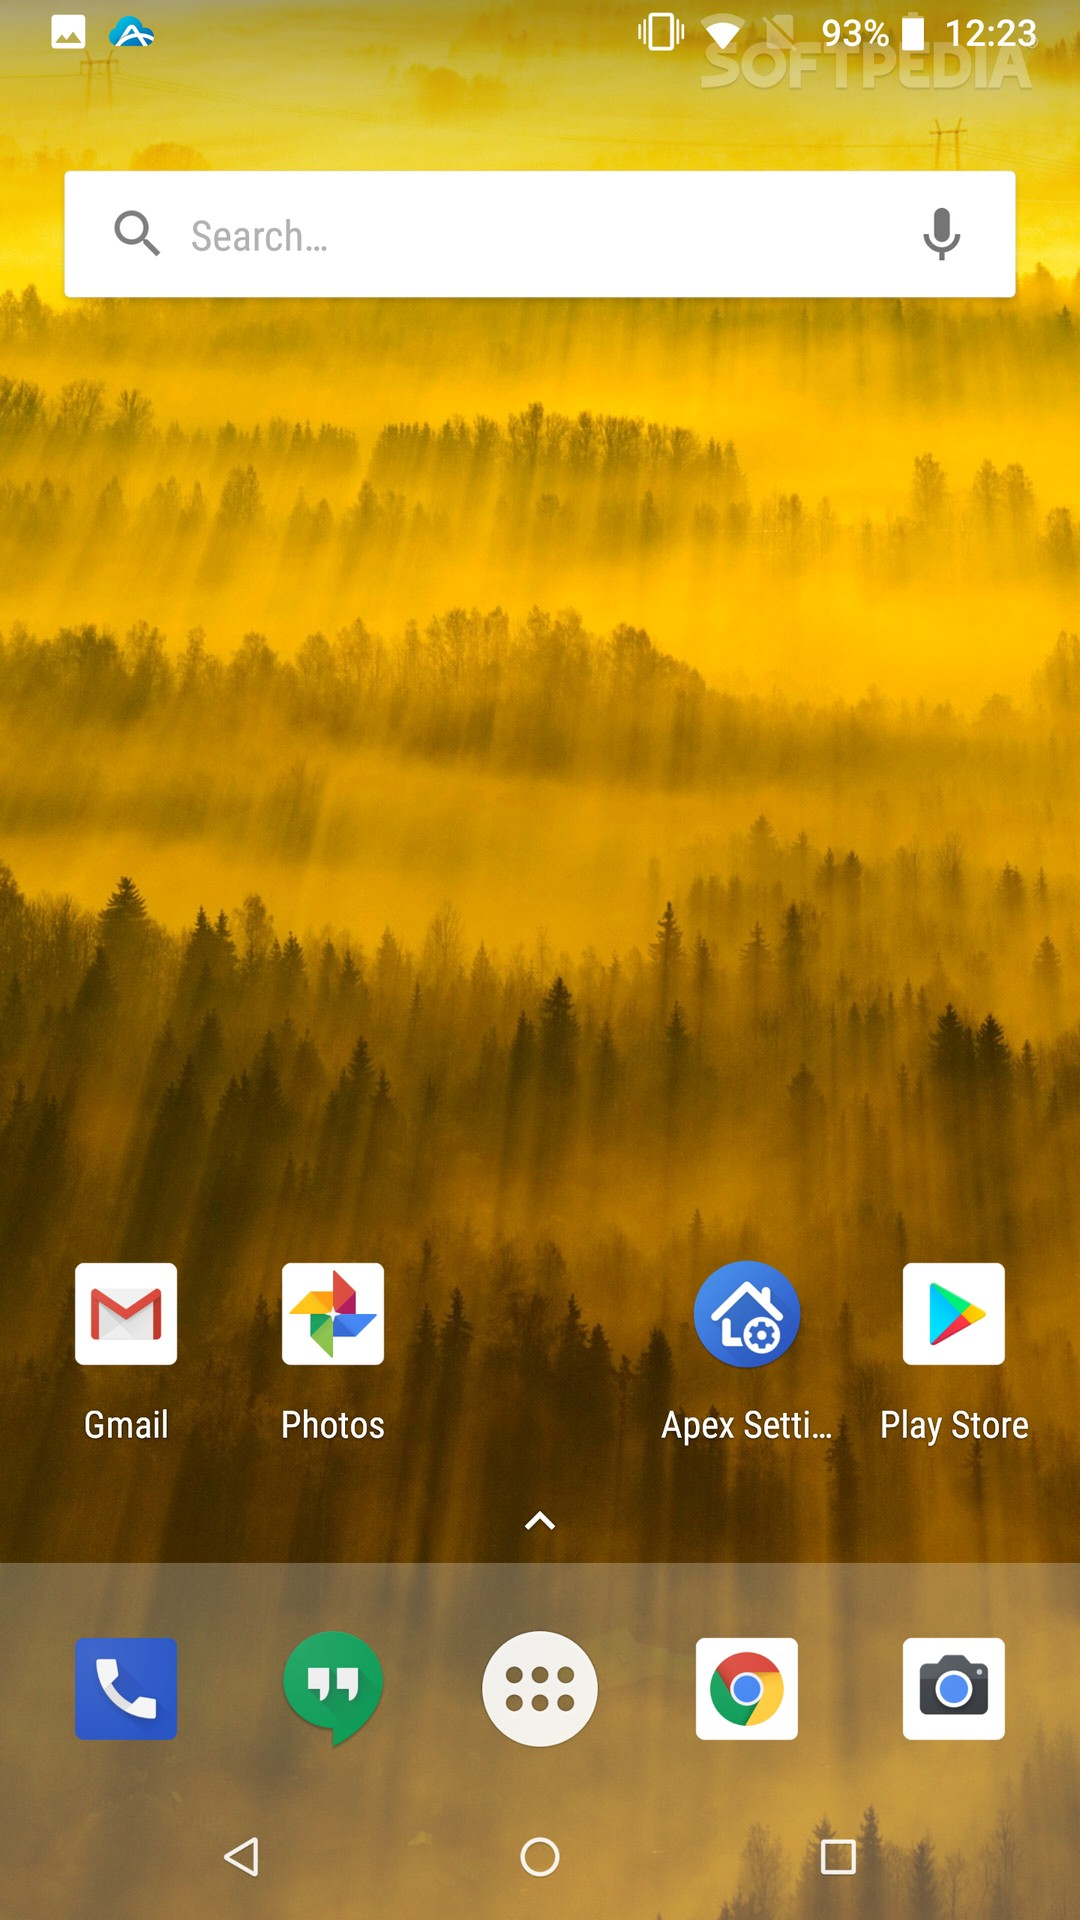 Apex Launcher 3 3 3 APK Download